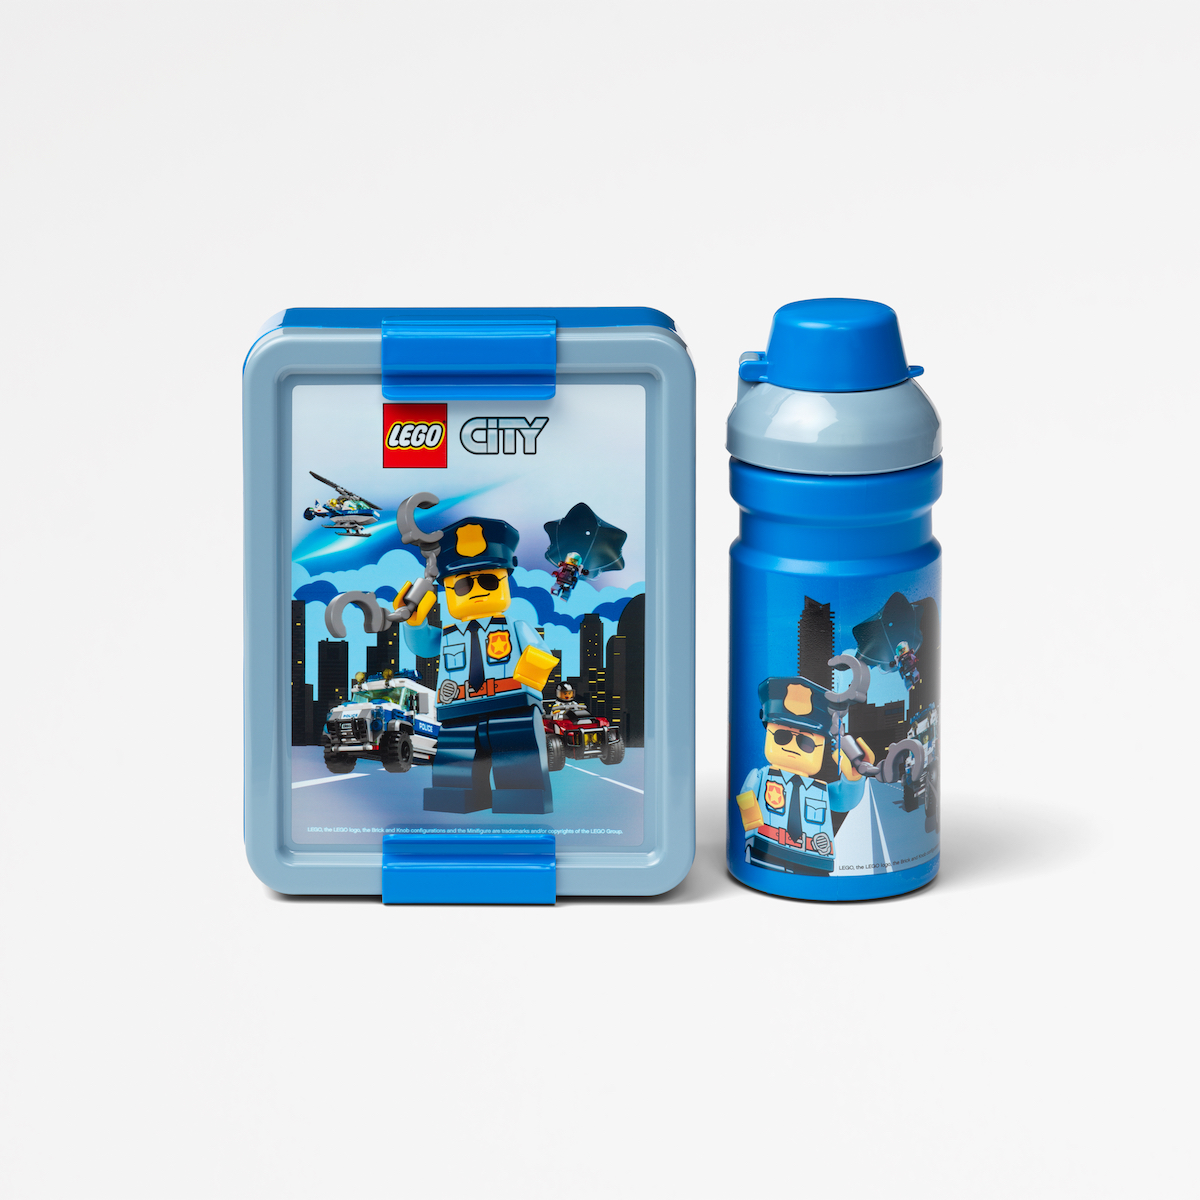 Lego lunch set, plastic, collection, lunch, happy, playful, household